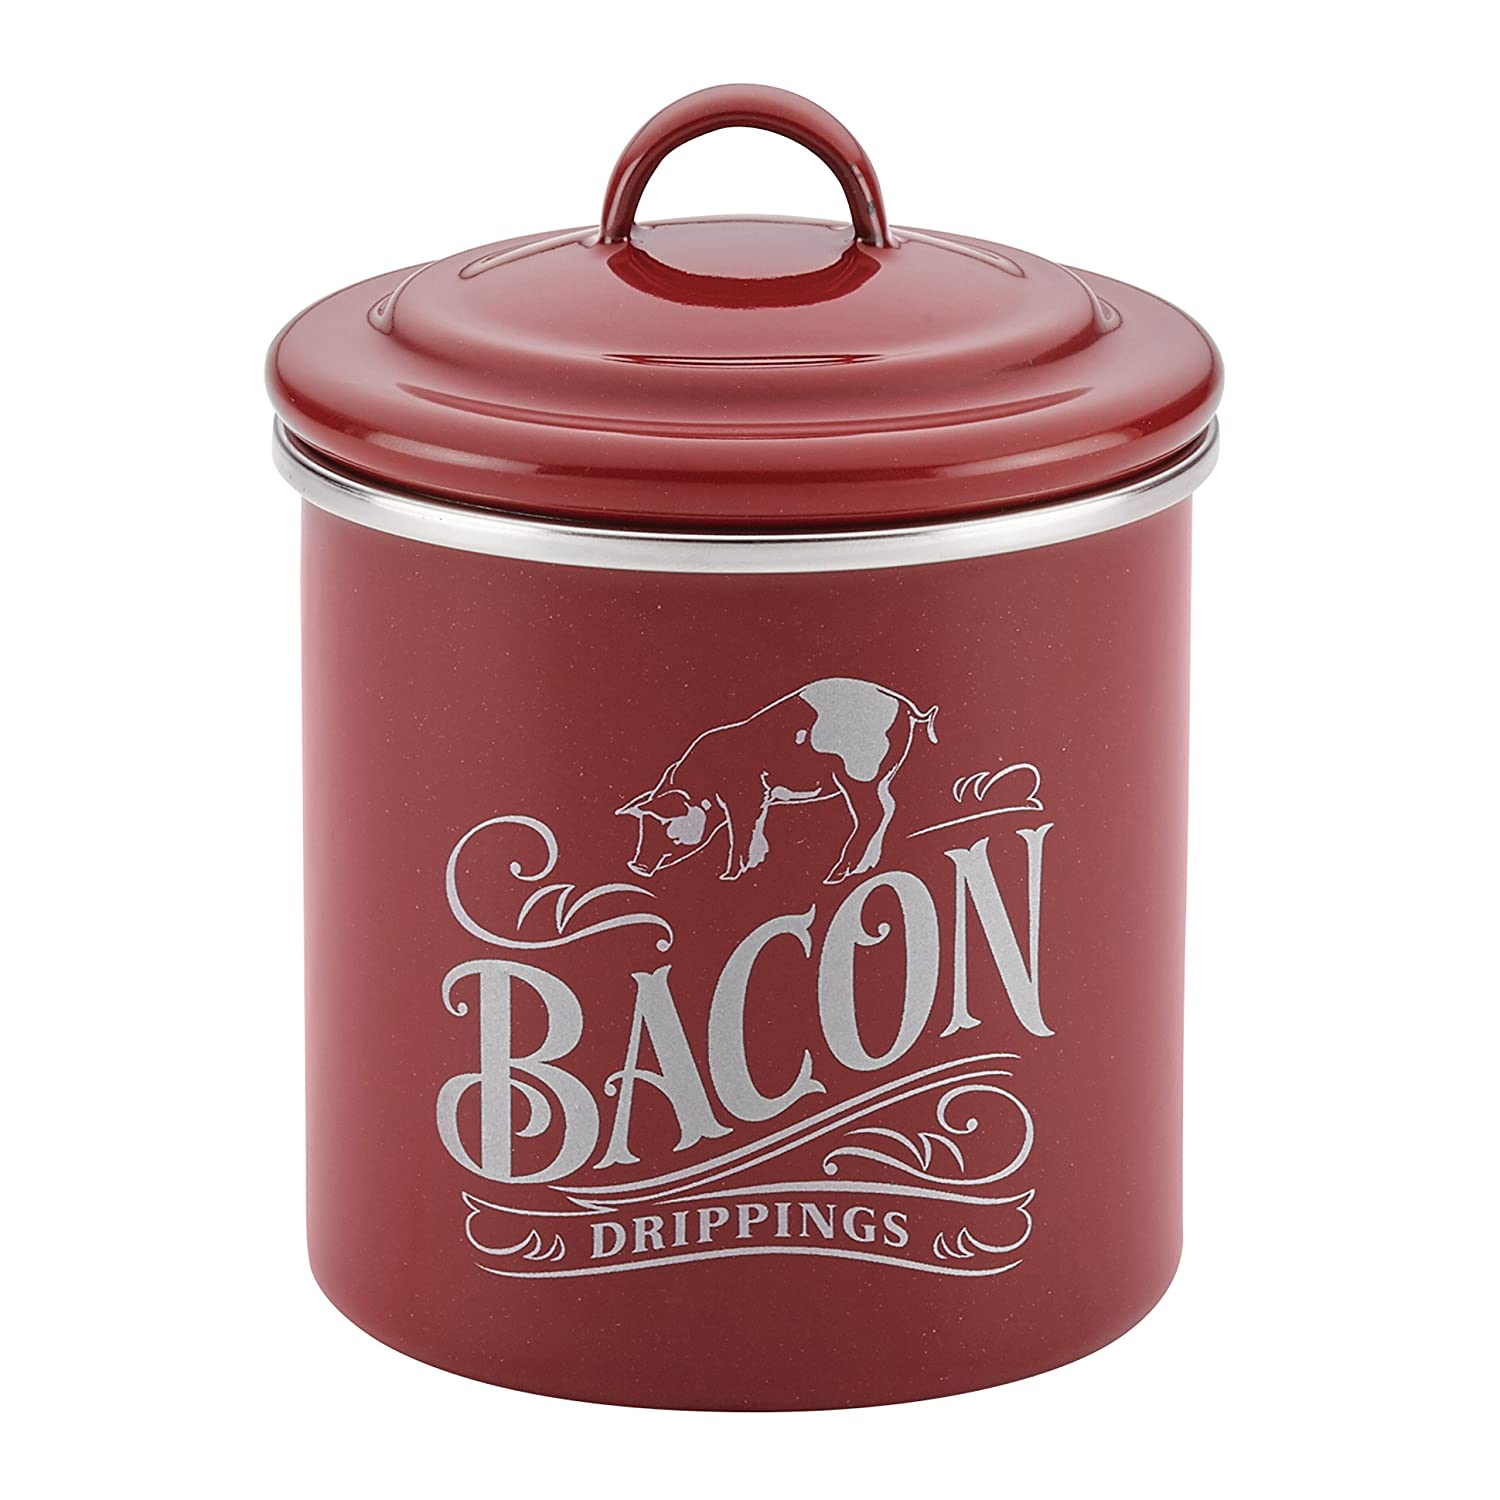 Ayesha Collection Enamel on Steel Bacon Grease Can, 4-Inch by 4-Inch, Sienna Red